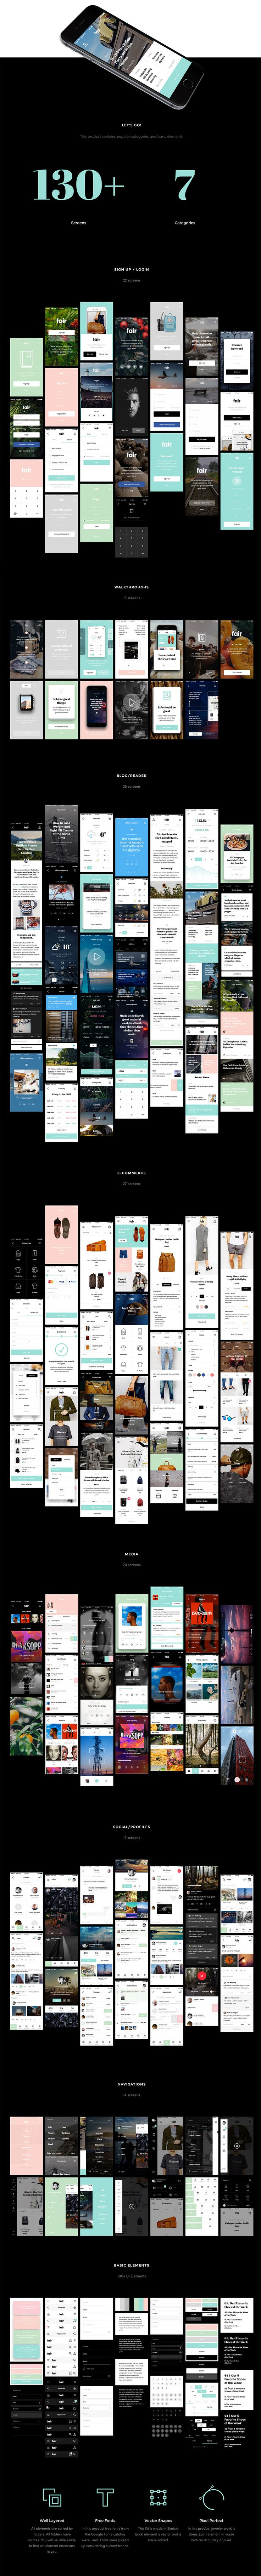 Fair Mobile UI Kit is the excellent assistant for fast creation of your project. In it excellent fonts and colors, which now in a trend are picked up. Each project which will be made by means of it will be modern and convenient in use. Categories: Sign Up, Blog, E-commerce, Walkthrough, Navigations, Media, Social/Profiles, Basic …